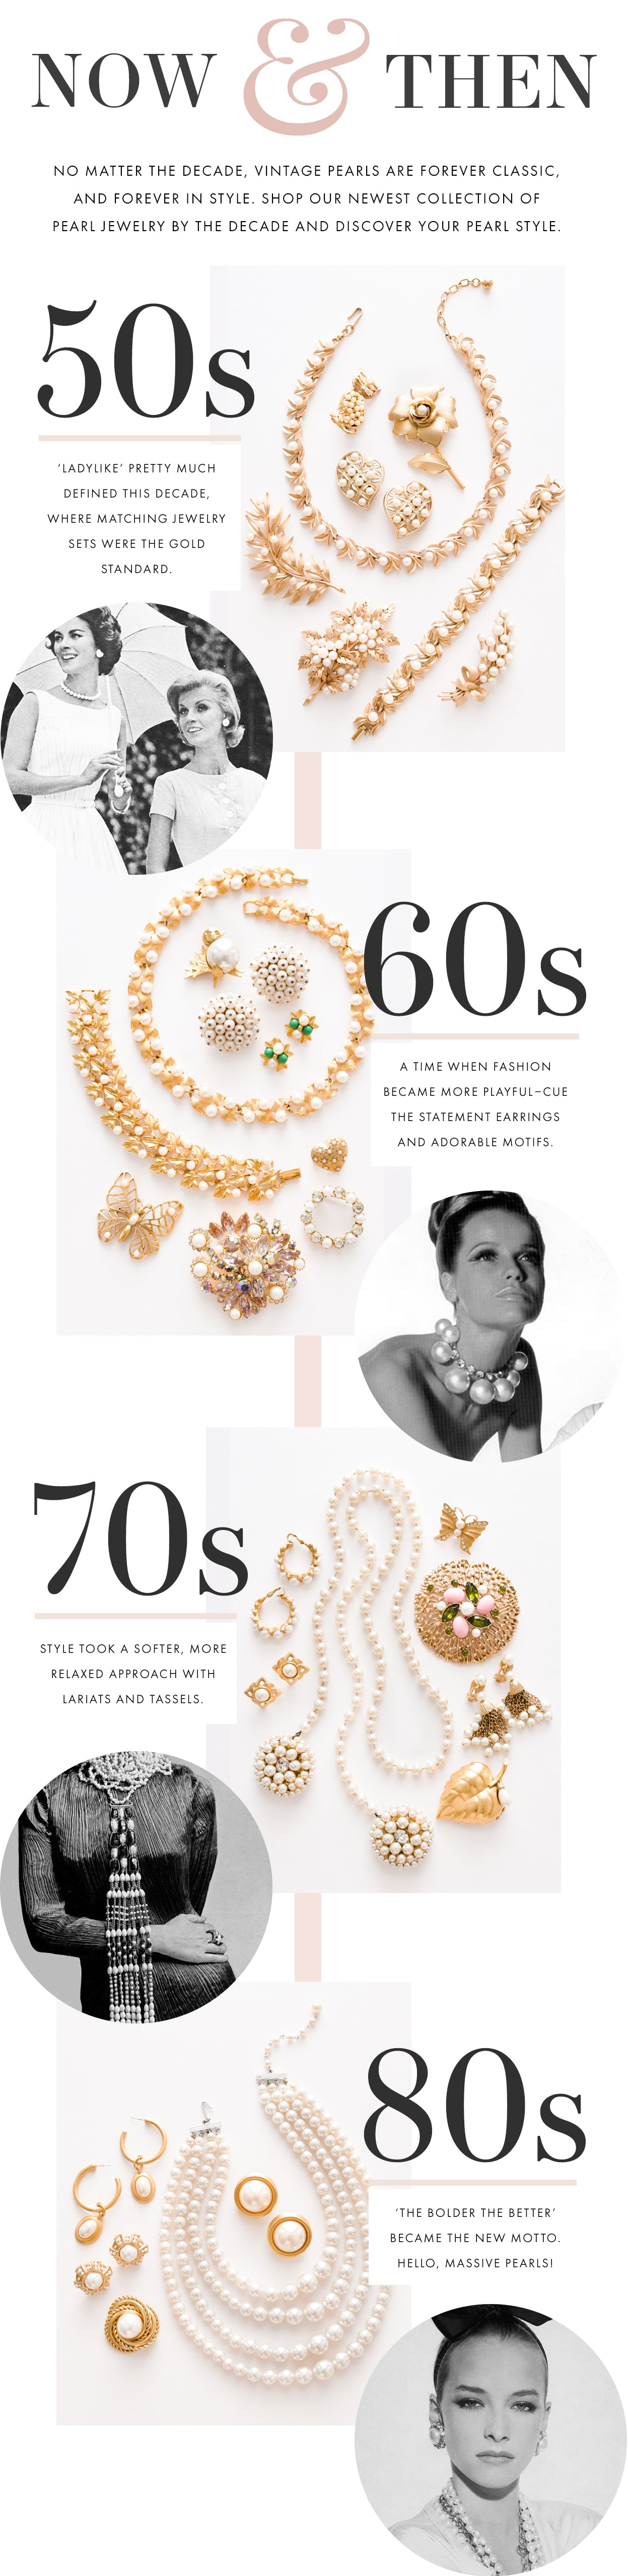 Vintage Pearls By The Decades- Sweet & Spark